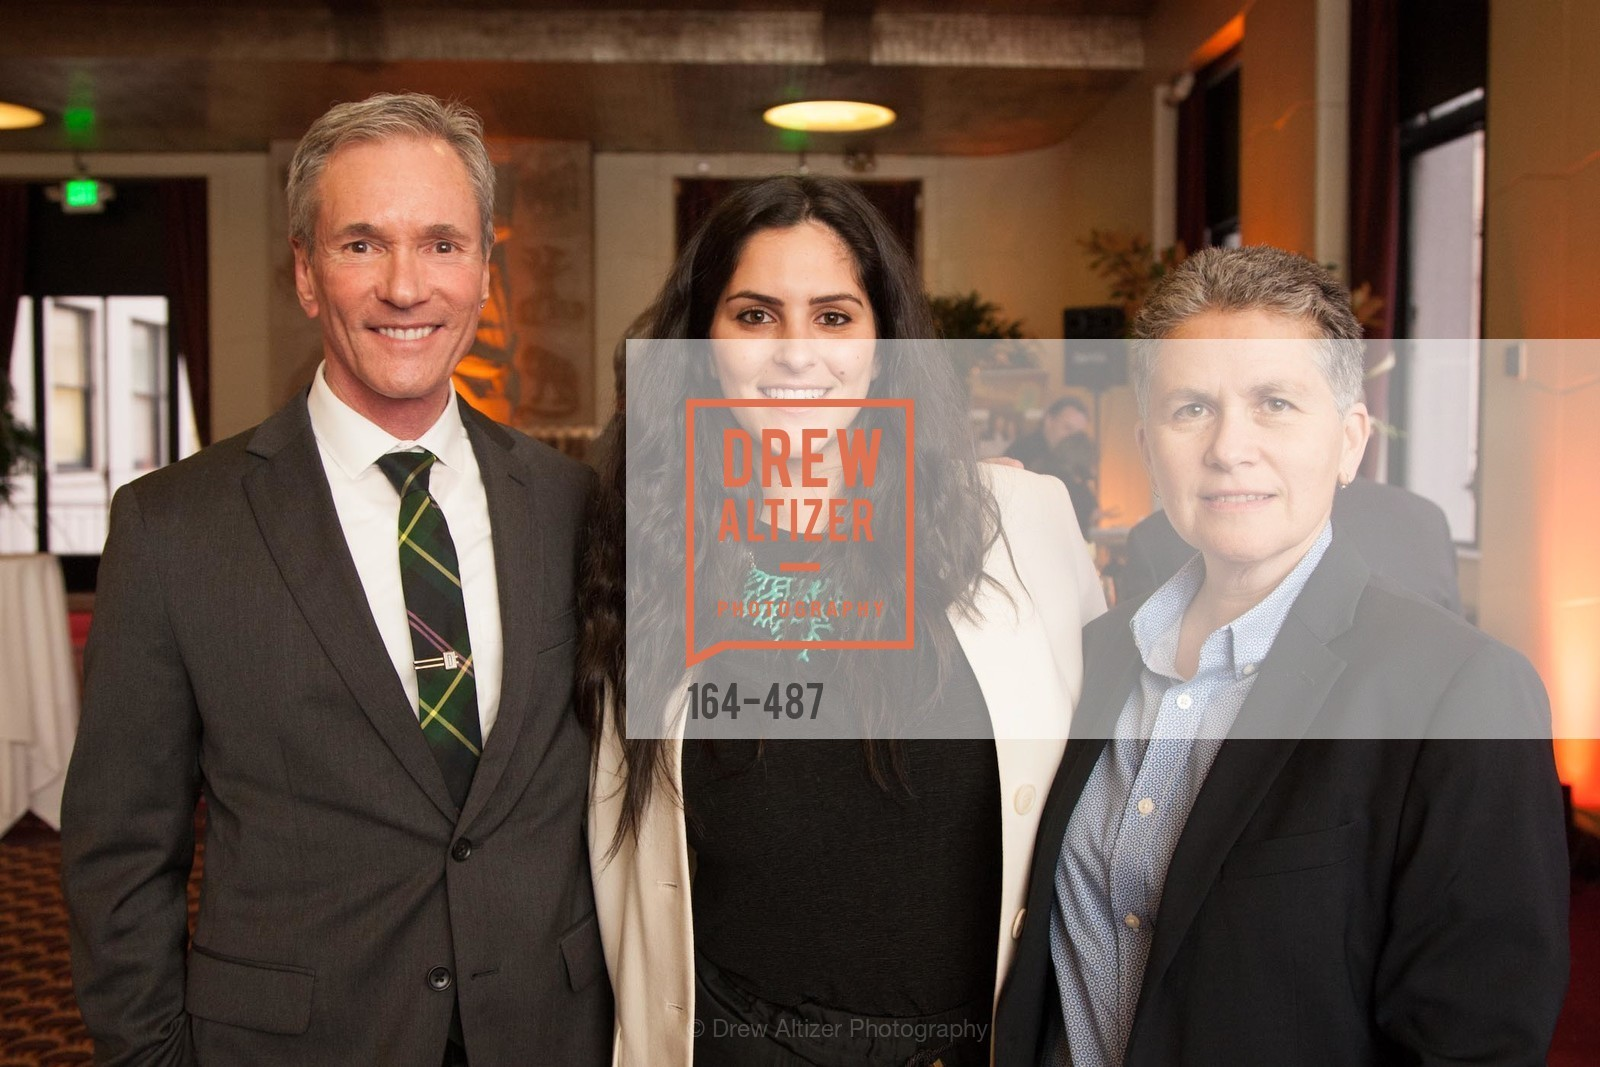 Jeff Schindler, Juliet Chaitin-Lefcourt, Vitka Eisen, Campaign Launch - David E. Smith, MD Medical Clinic, US. US, April 1st, 2014,Drew Altizer, Drew Altizer Photography, full-service agency, private events, San Francisco photographer, photographer california